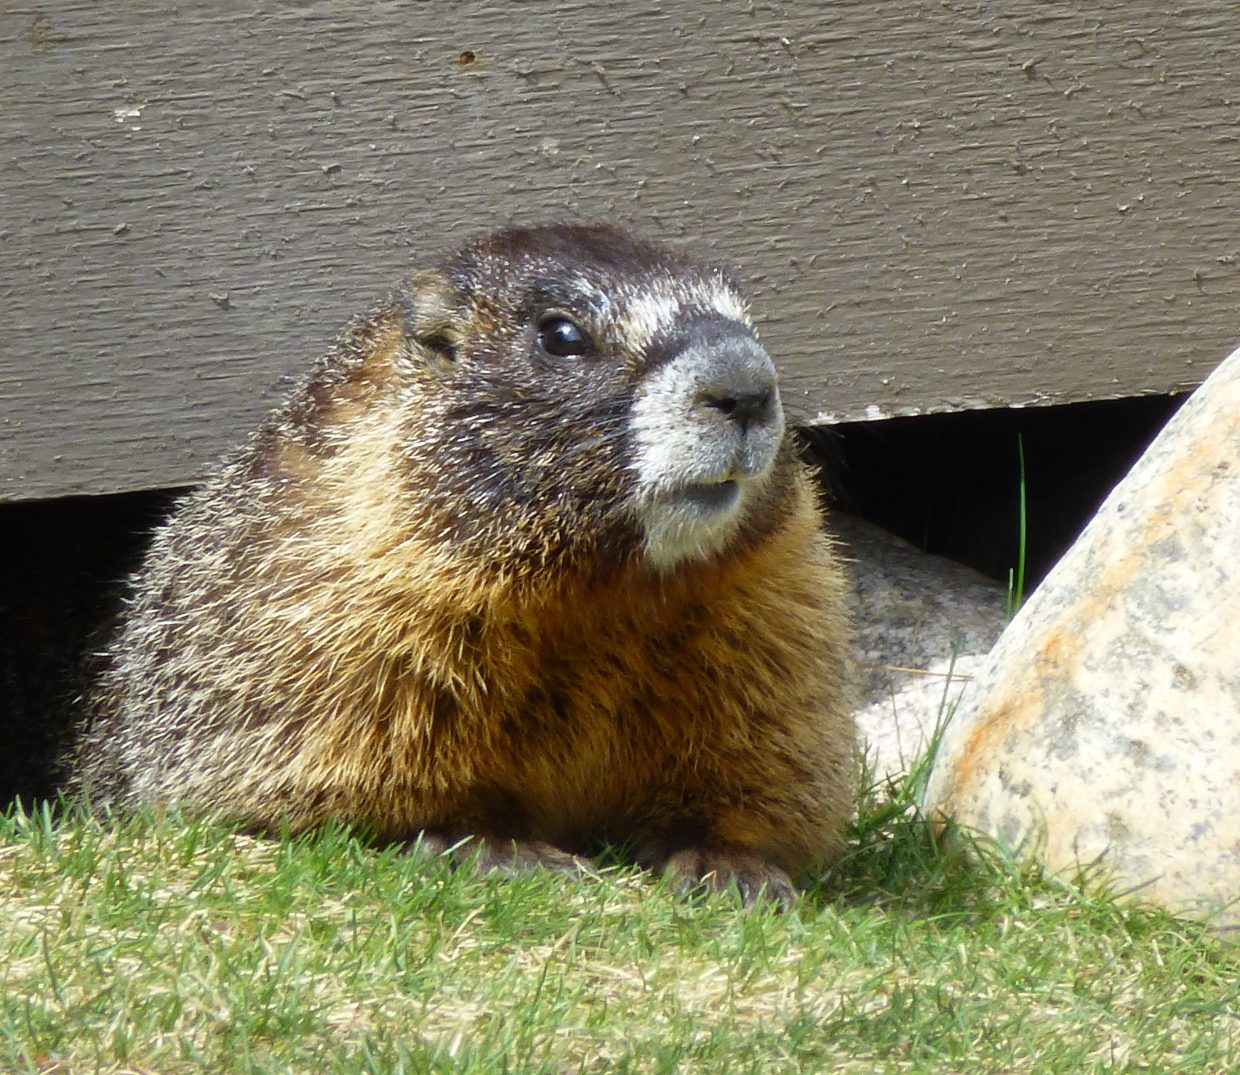 Marmot near Fish Creek. Submitted by: Gail Hanley